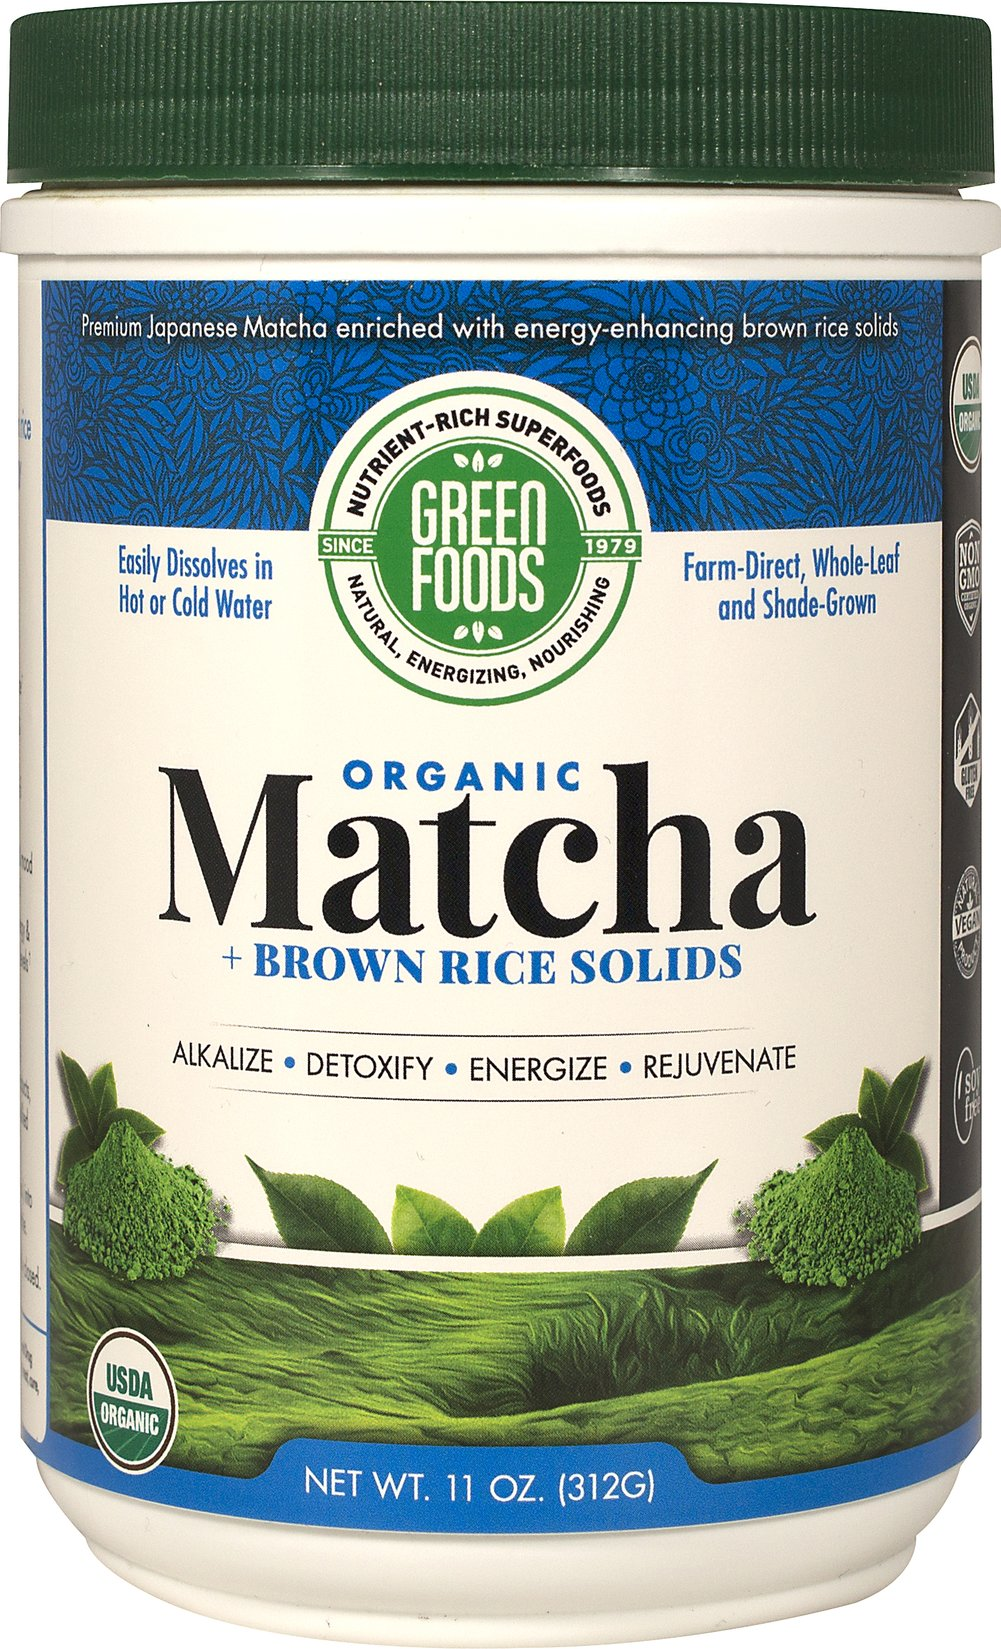 Organic Matcha + Brown Rice Solids Thumbnail Alternate Bottle View